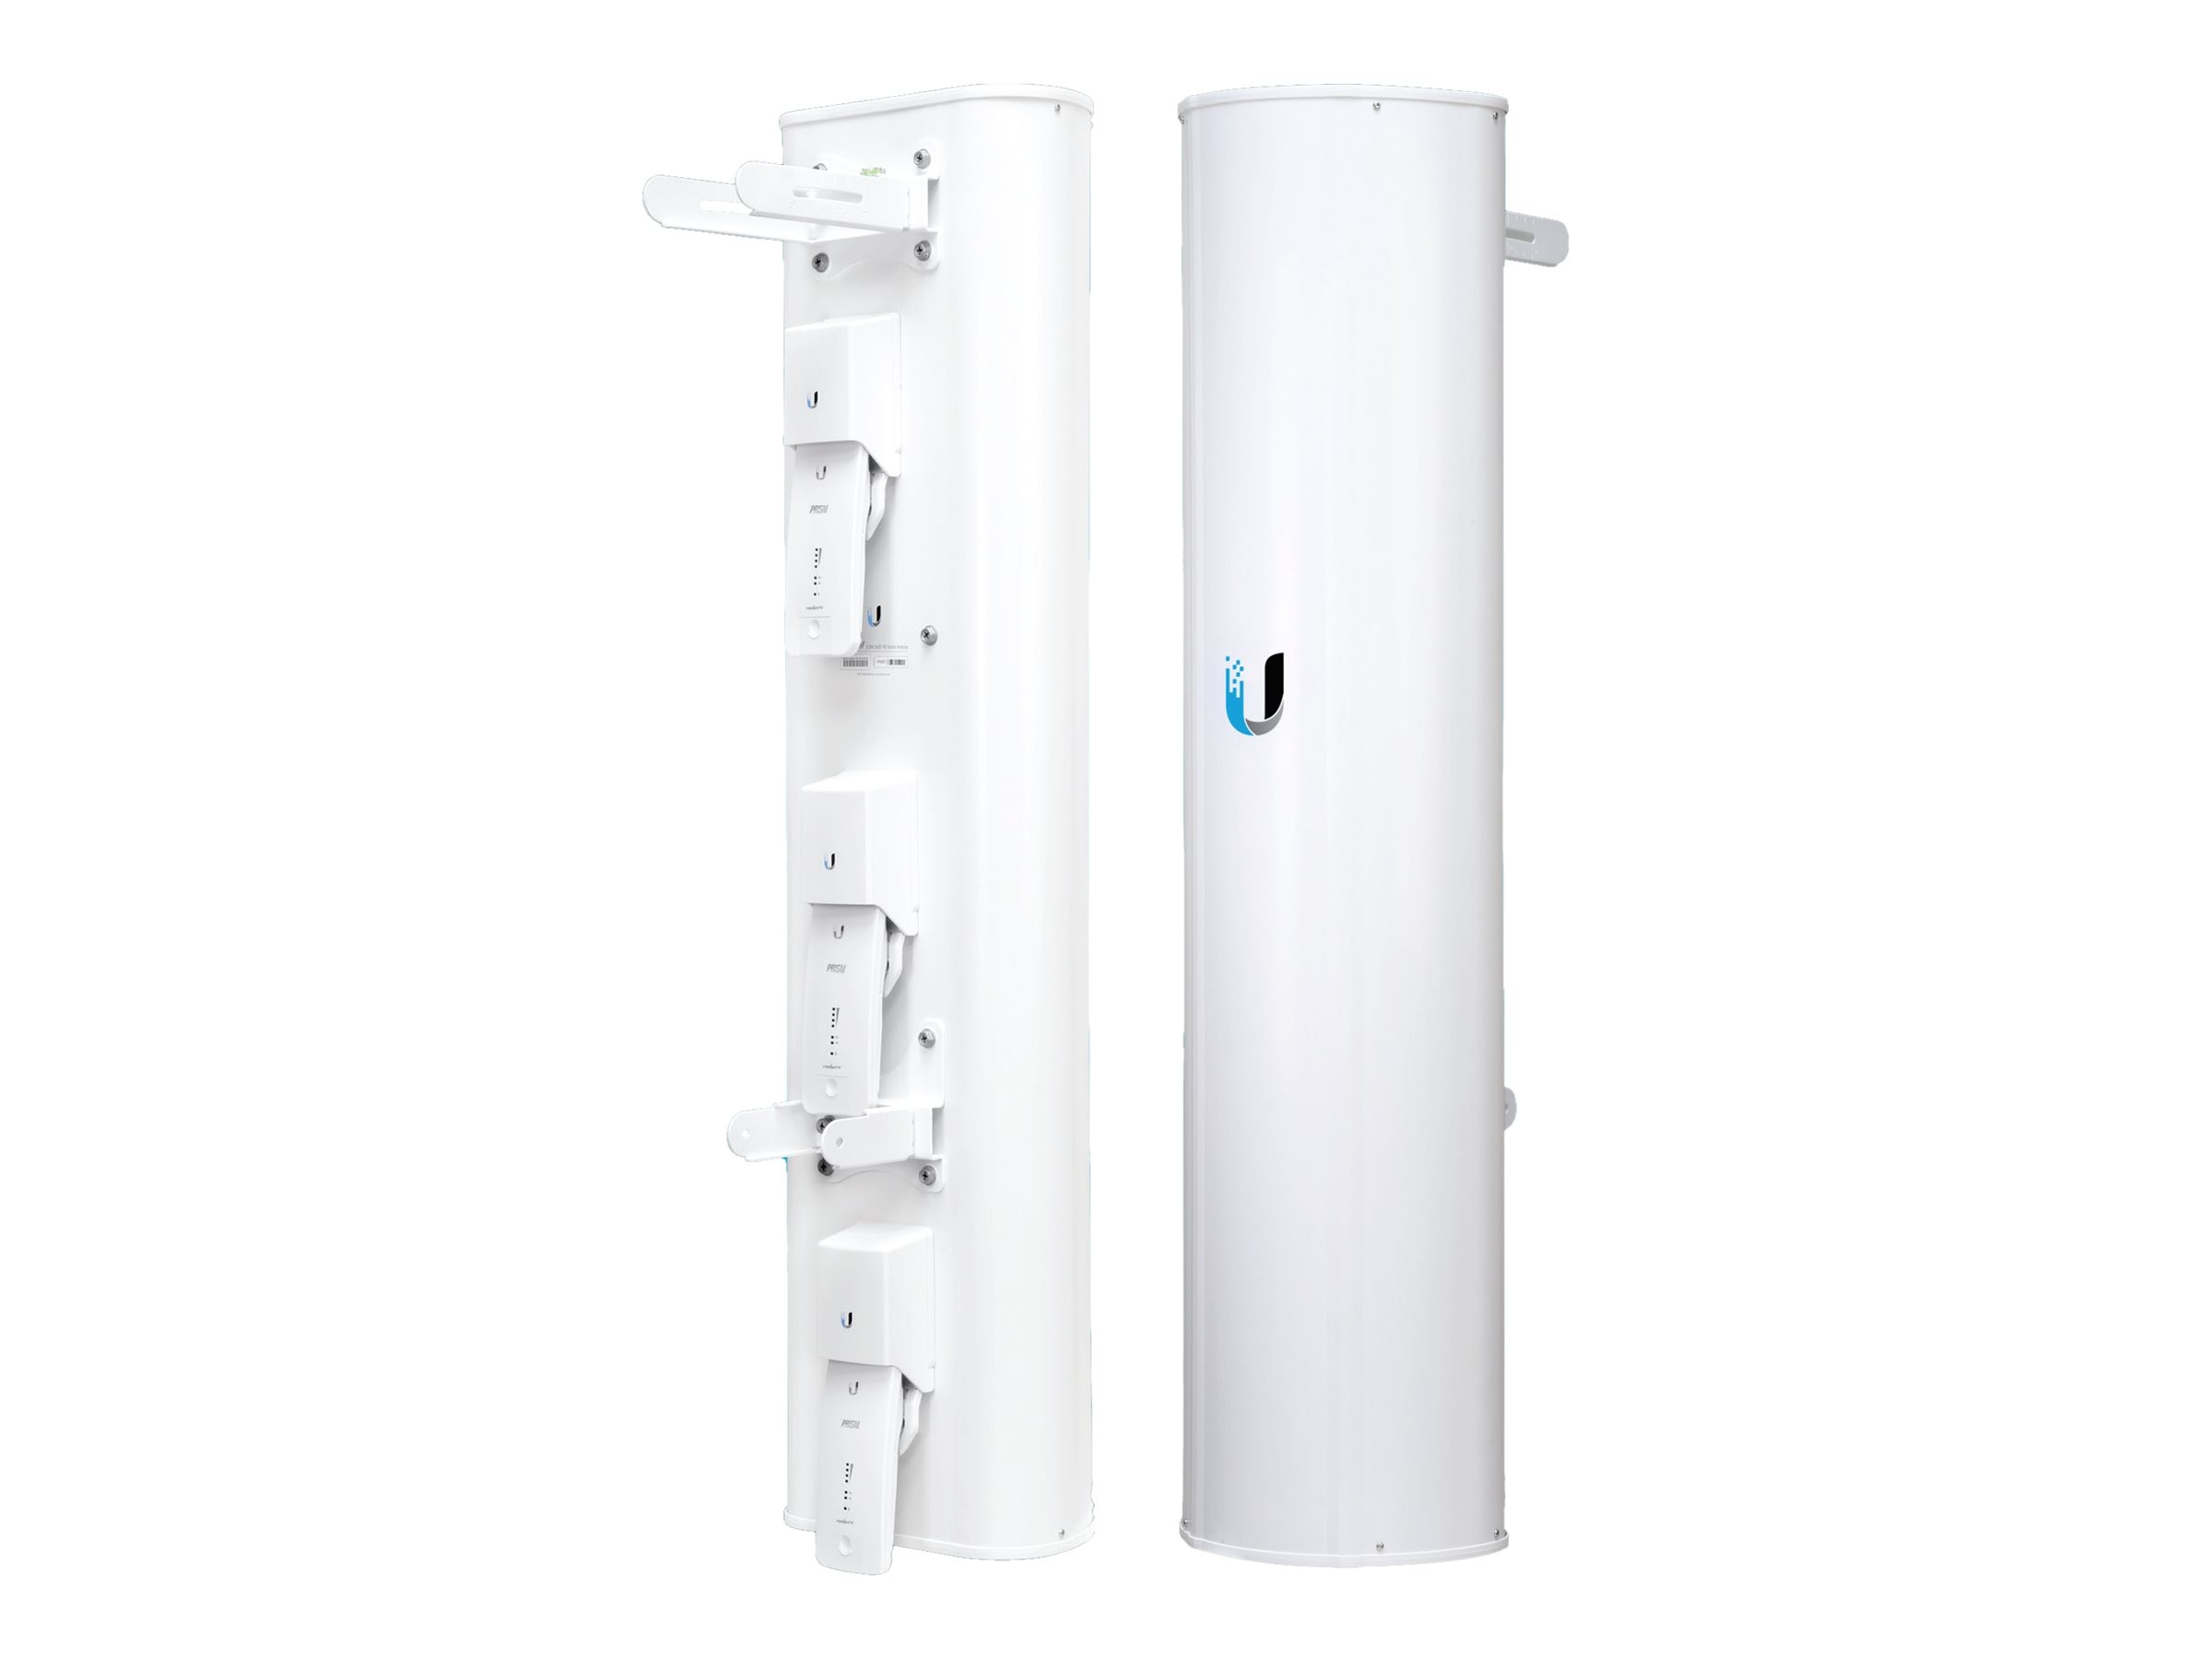 Ubiquiti 5GHz airPrism 90 Degree Wireless Sector Antenna, AP-5AC-90-HD